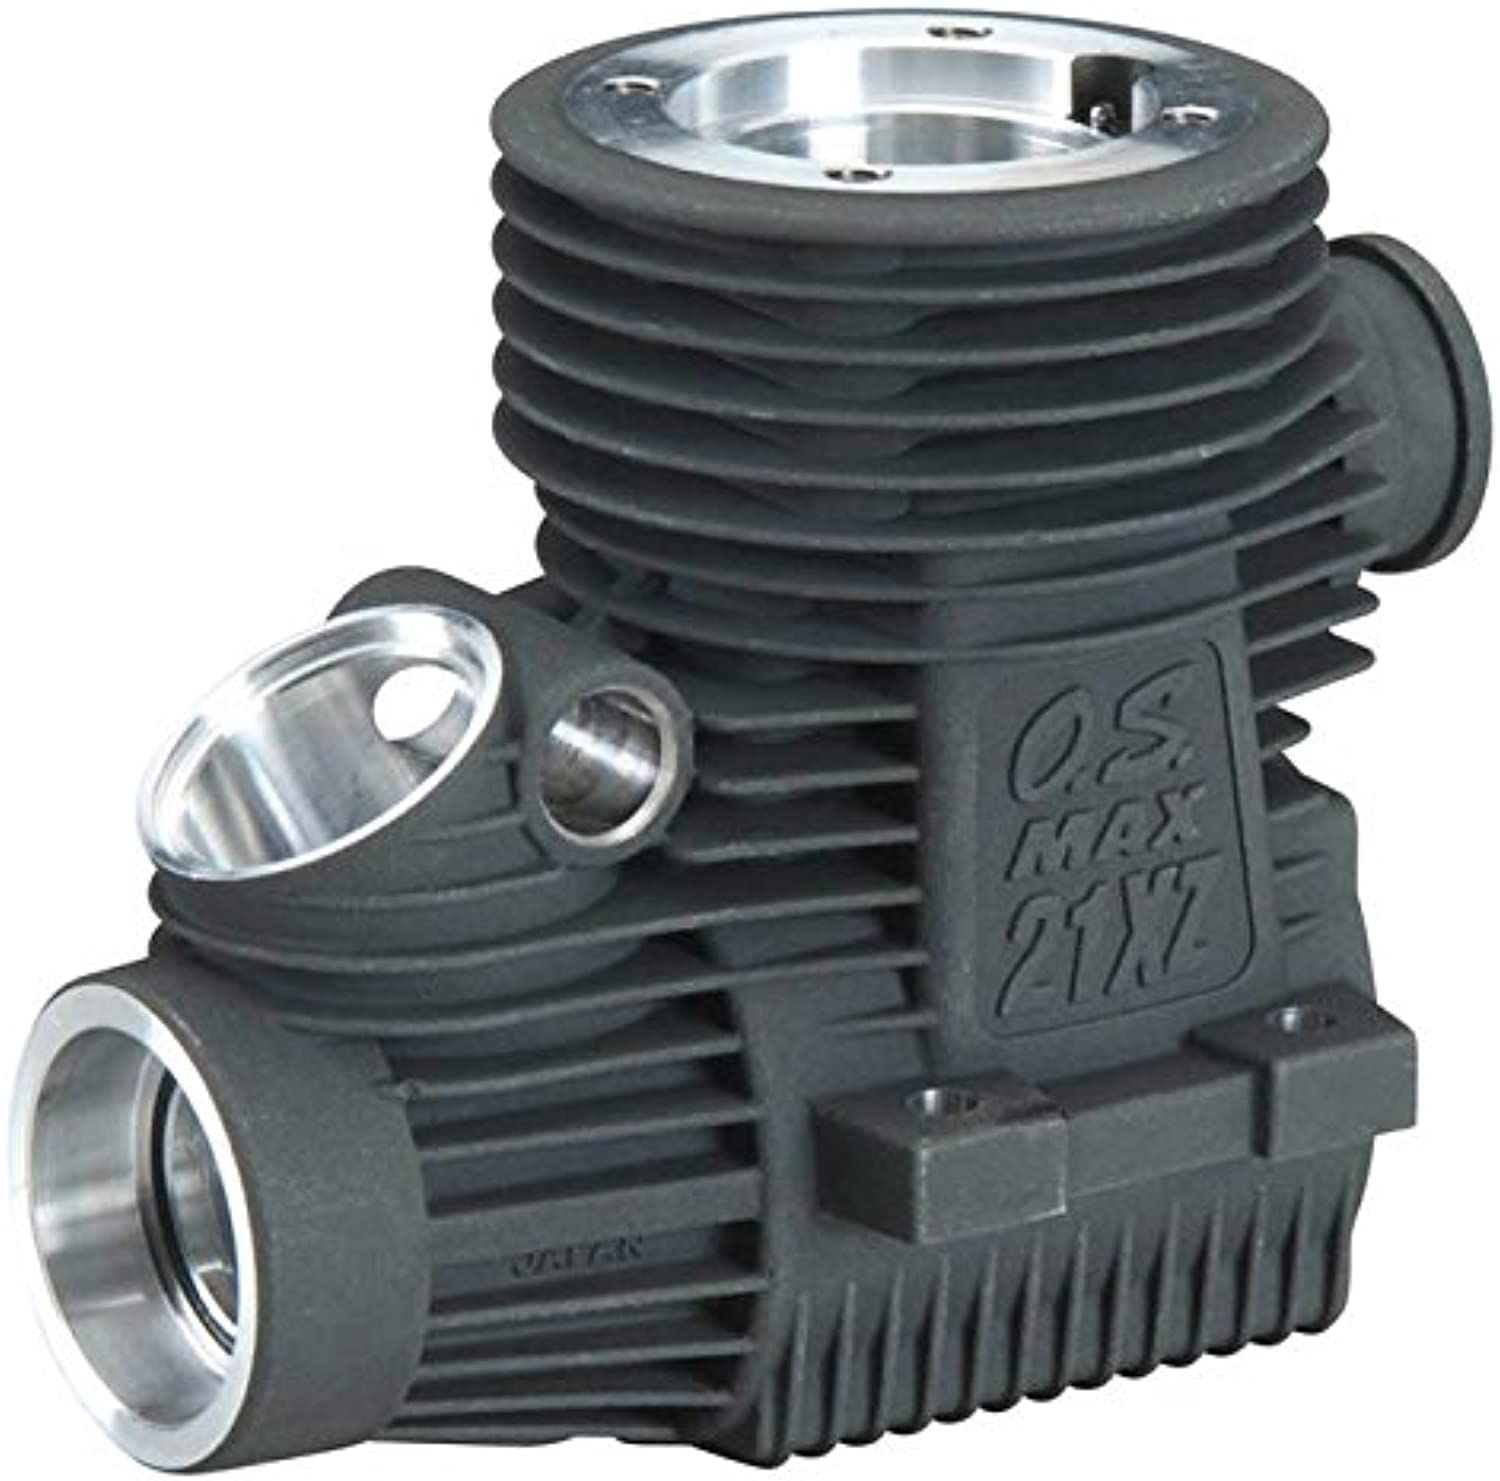 Crankcase OSSPEED 21XZ-B 22421000 (Japan import   The package and the manual are written in Japanese)